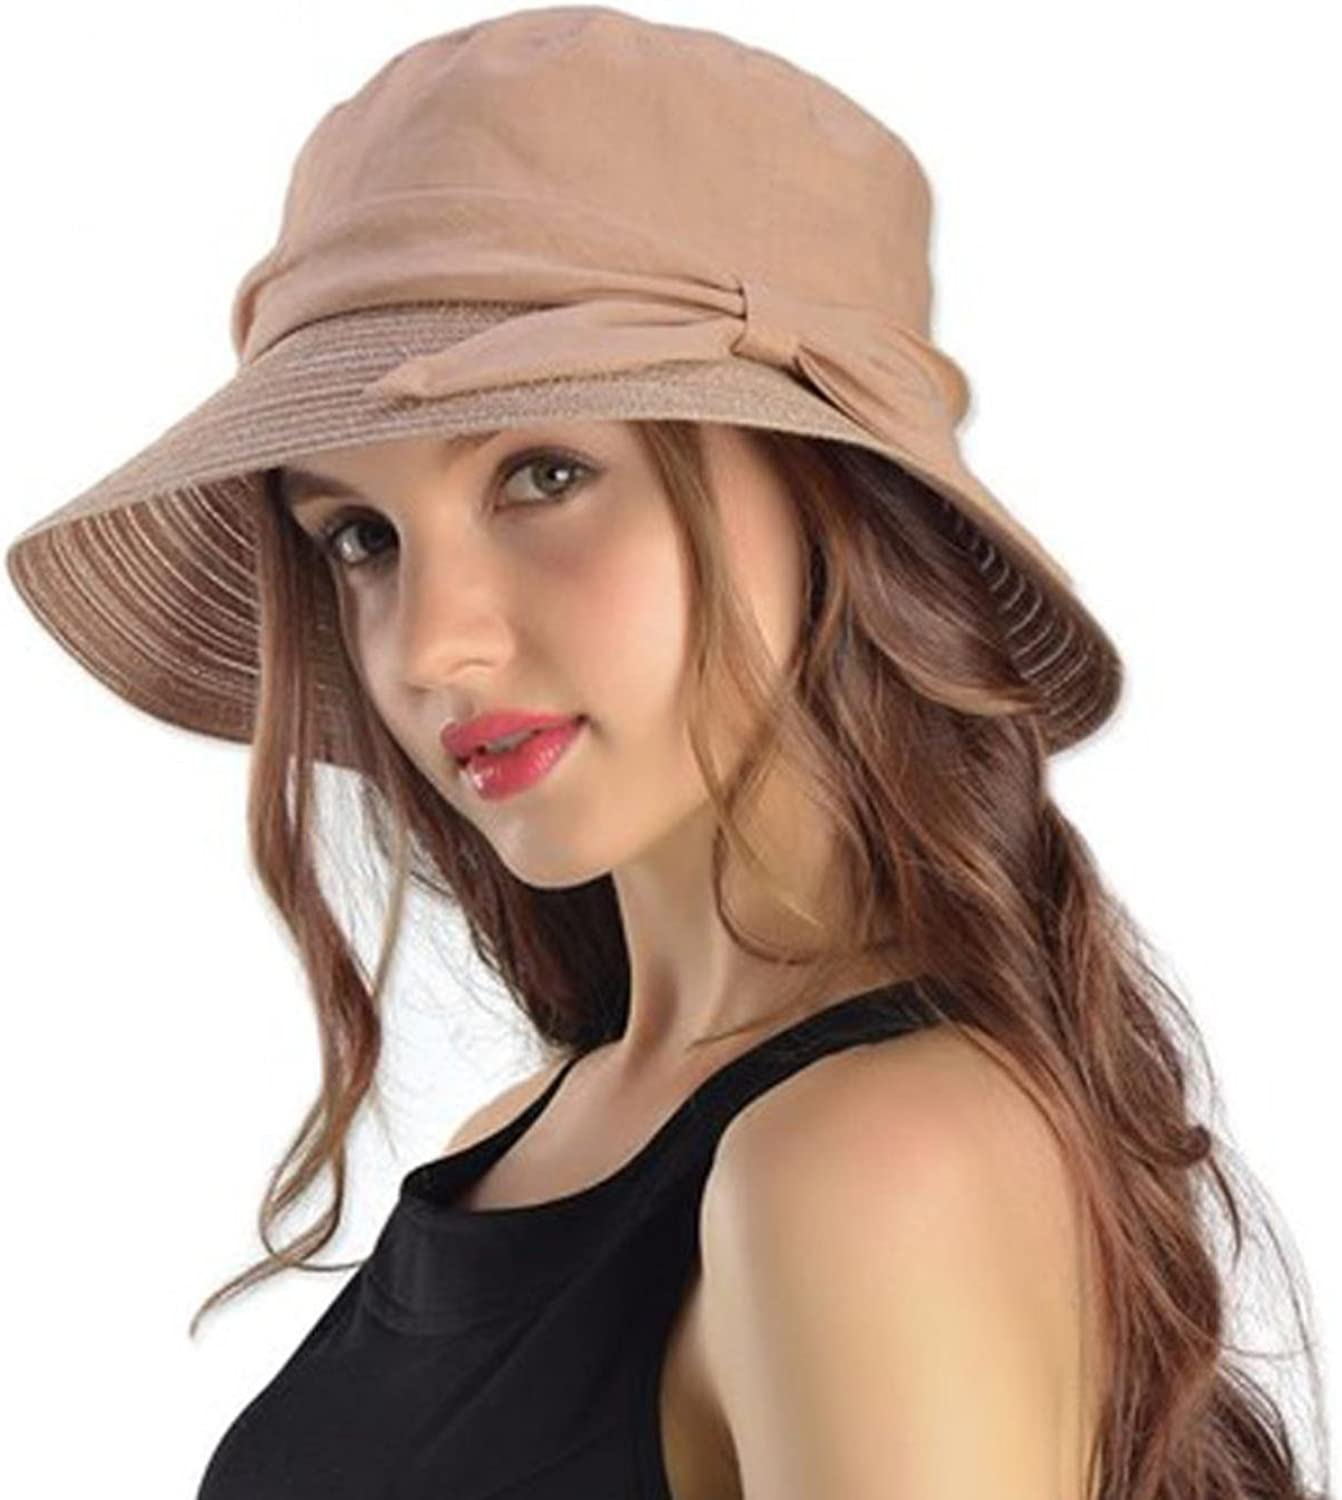 Fuodeau 100% Ramie Floppy Summer Hats for Women Wide Brim UV Hat Sun Visors Elegant Bowknot Casual Beach Sunhat